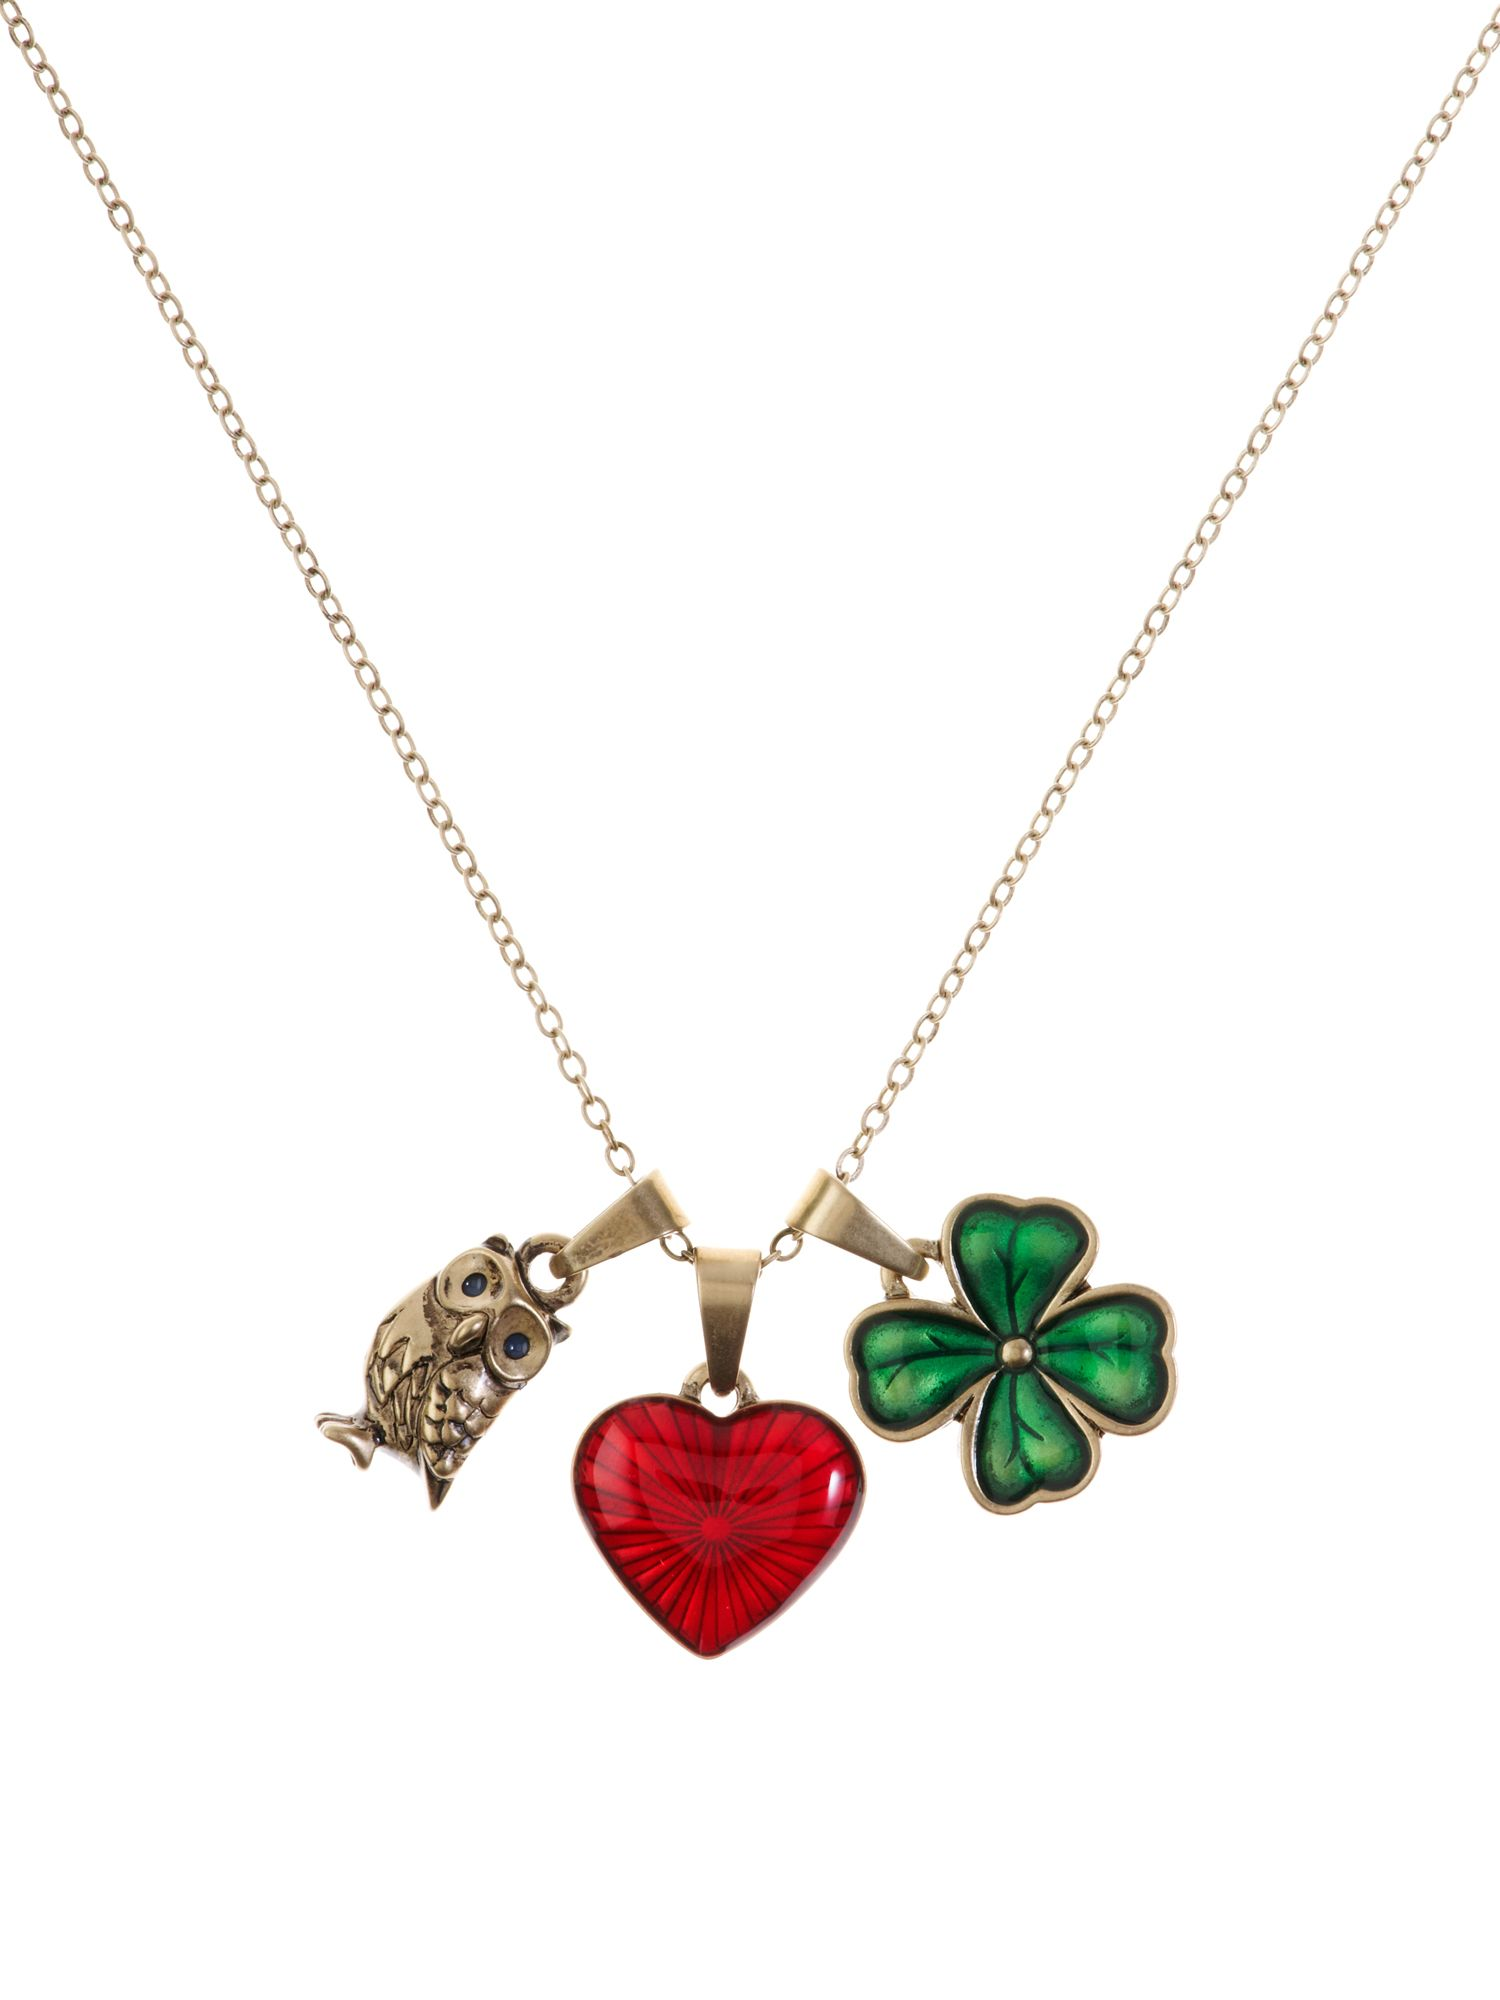 Cath Kidston Love luck wisdom necklace